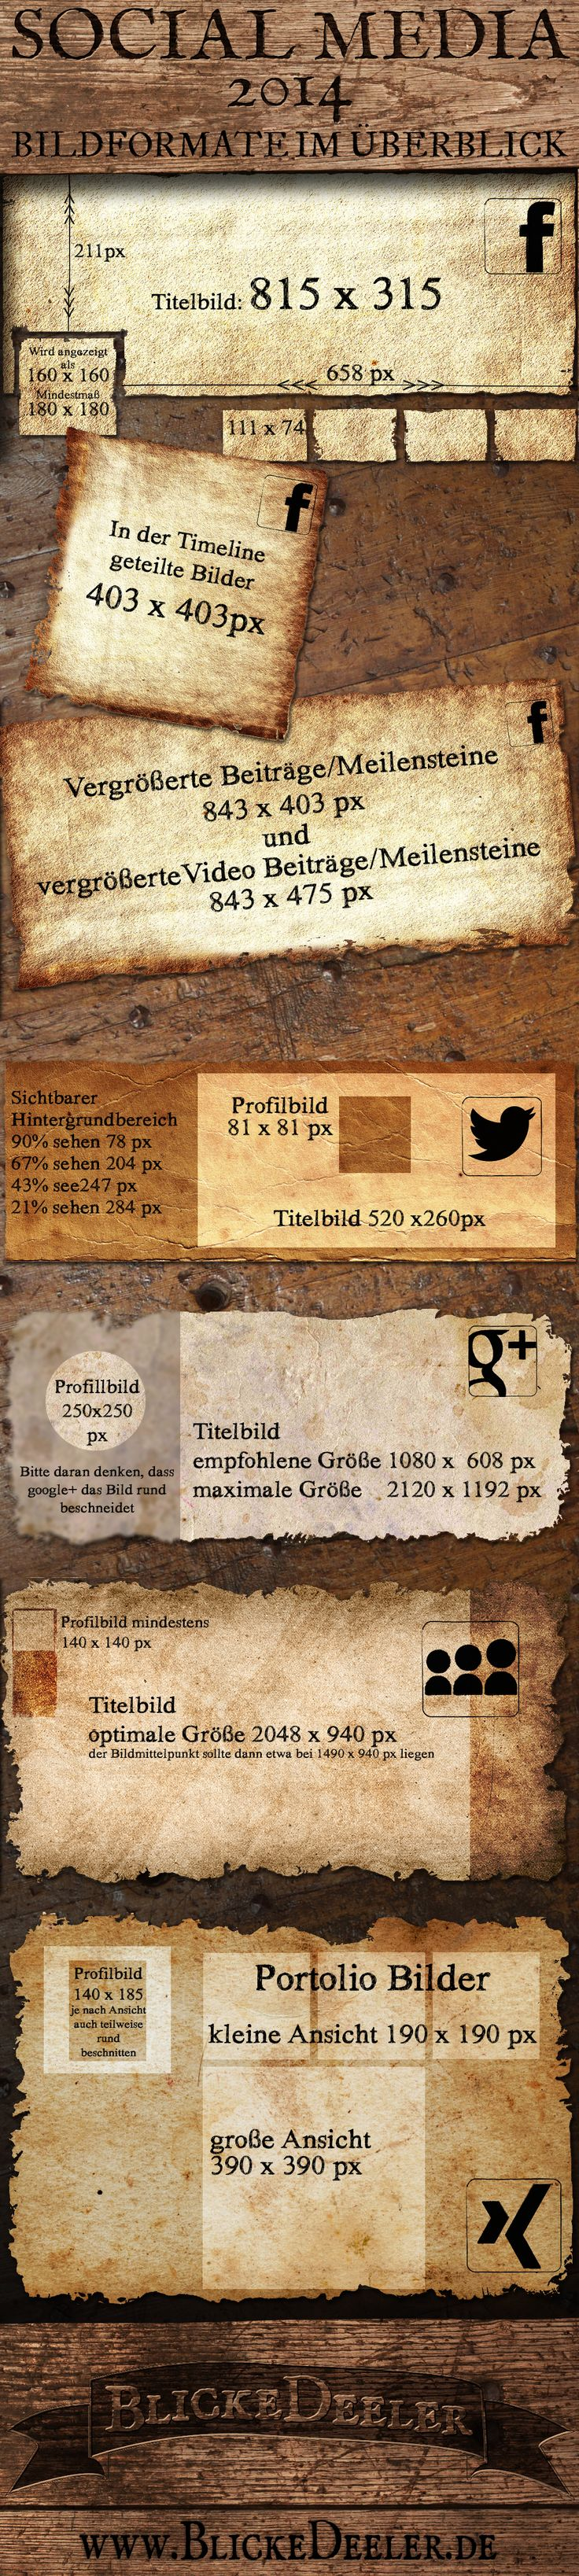 BlickeDeeler: SocialMedia Bildgröße - Infografik | #infographic #marketing #socialmedia #sizesheet  #myspace #xing #facebook #google+ #community #business #illustration #information #design < designed and pinned by www.BlickeDeeler.de